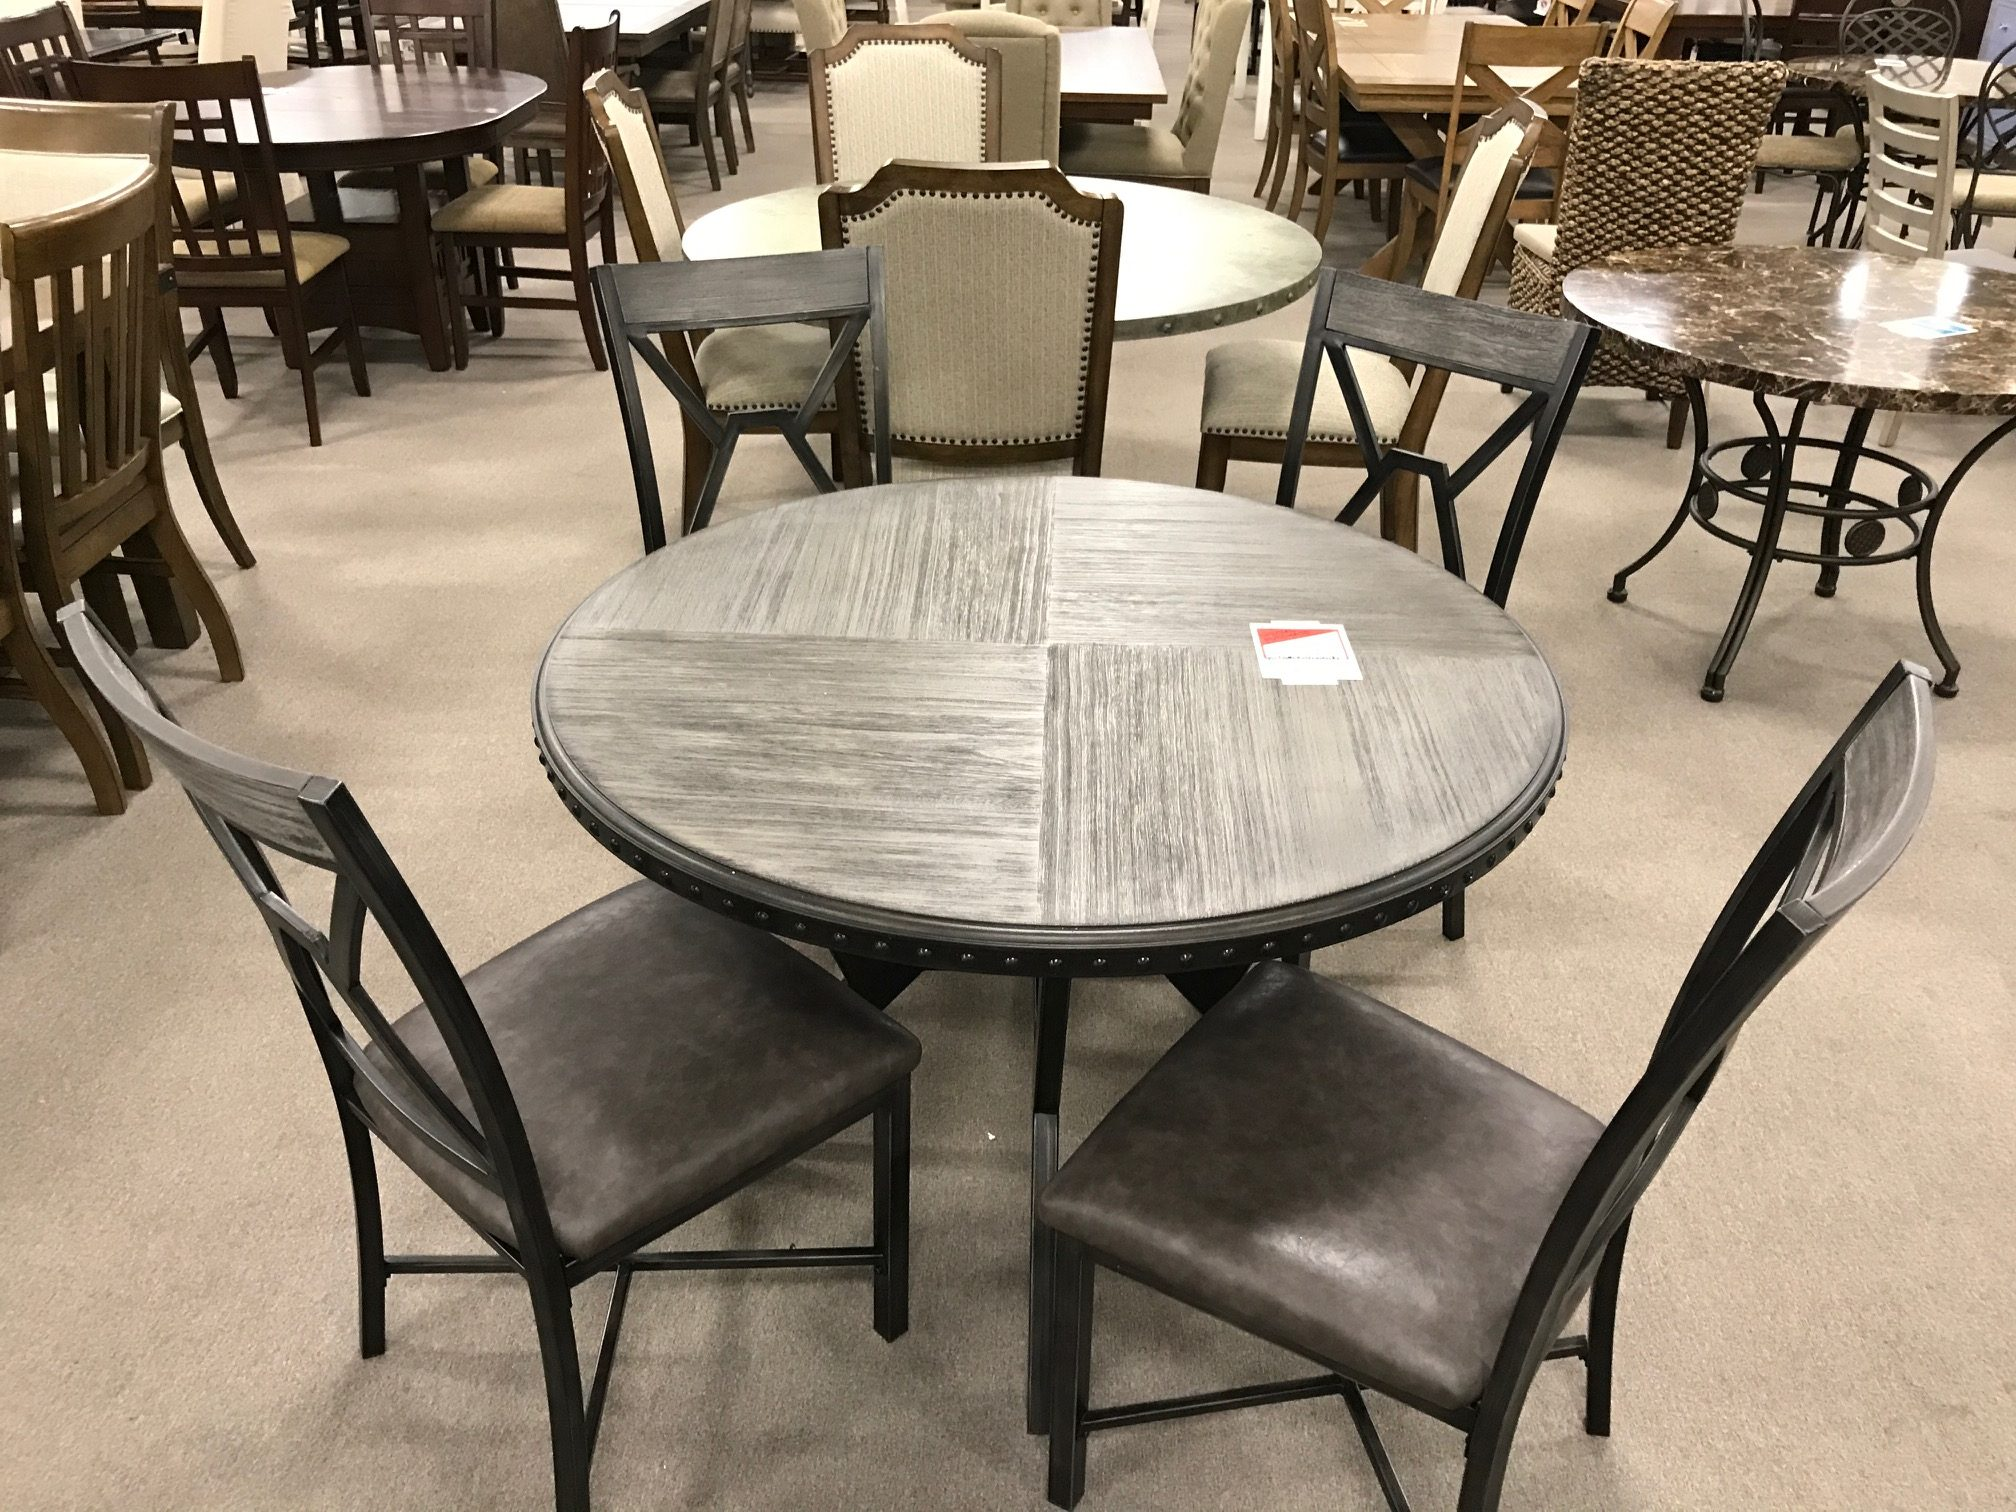 5pc Round Table Chairs Heavner Furniture Market